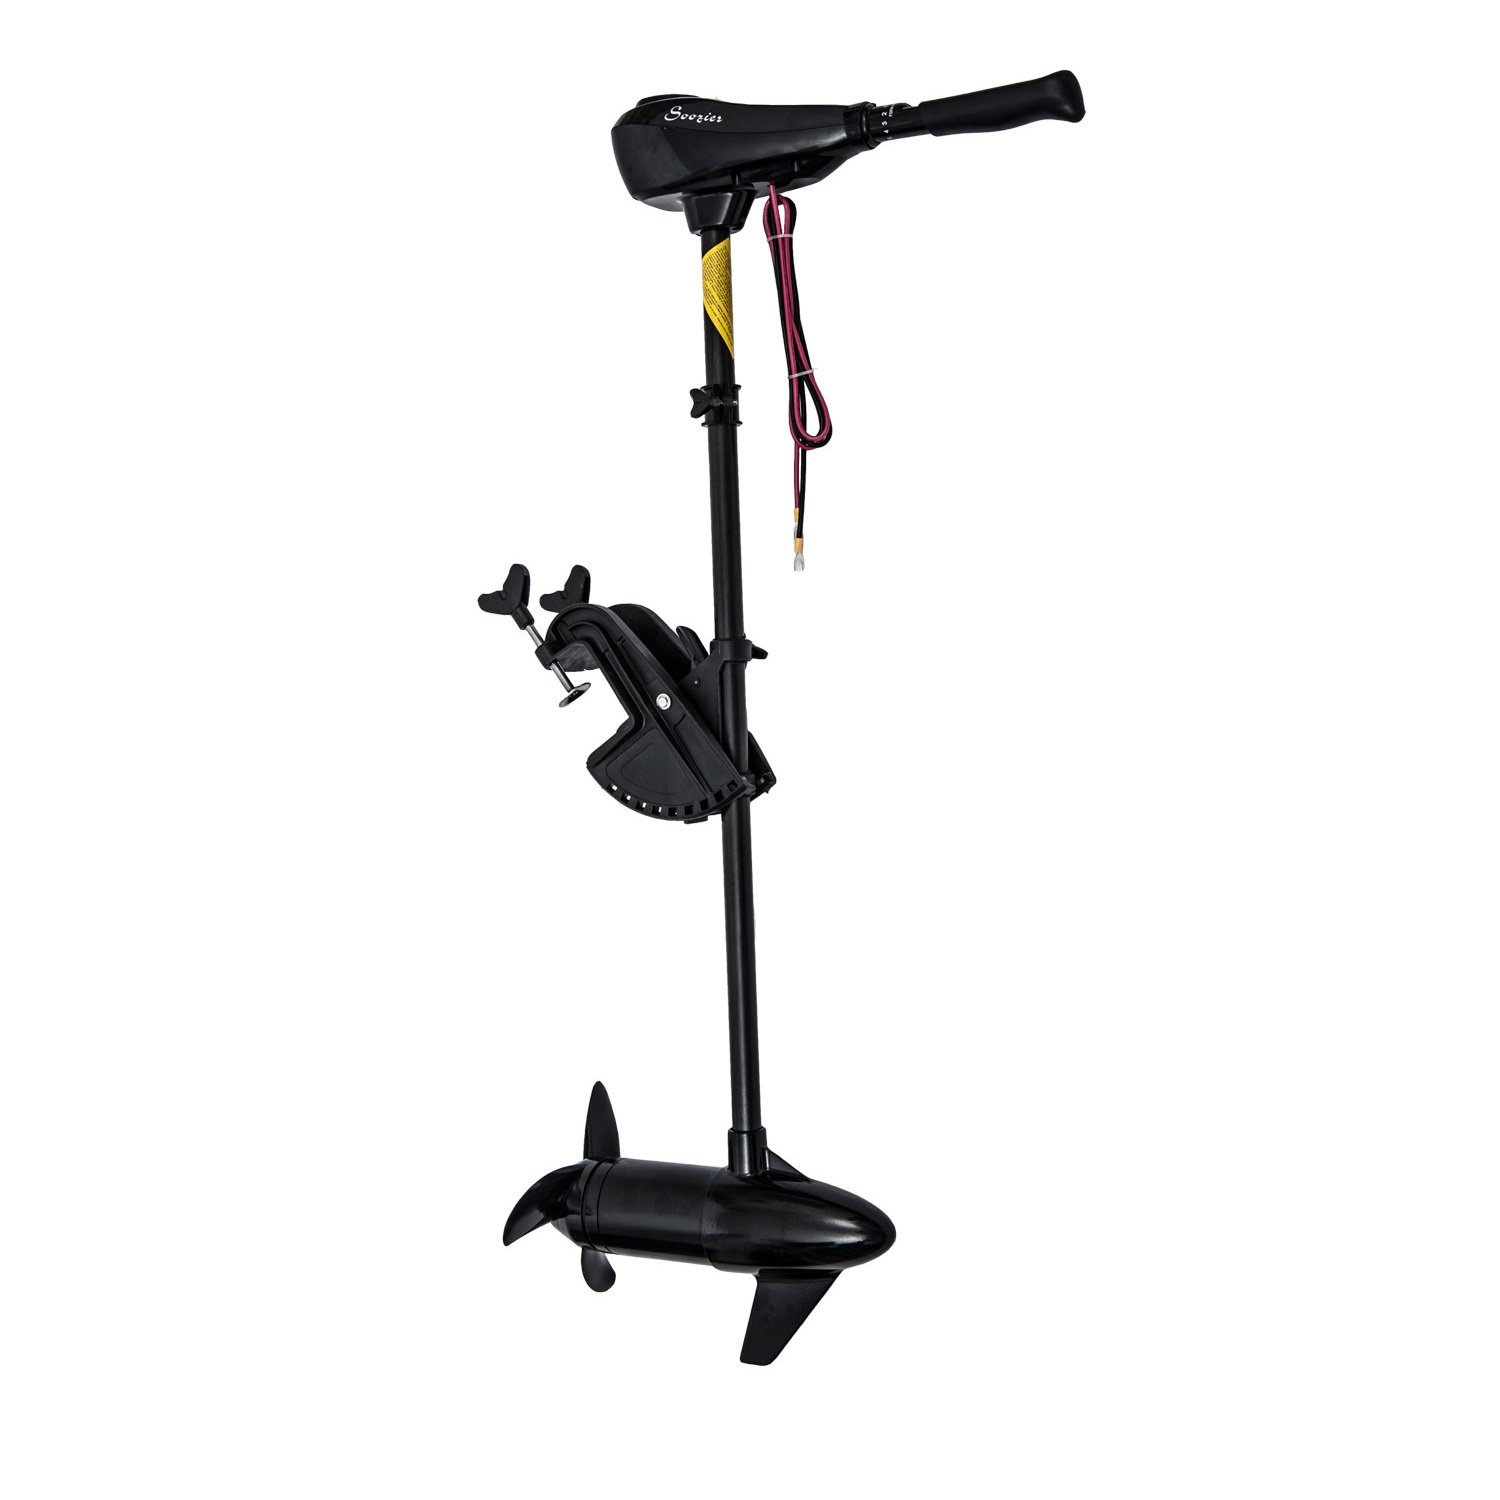 Outsunny 12V Transom Mounted 50-Pound Thrust Electric Fishing Boat Trolling Motor by Outsunny